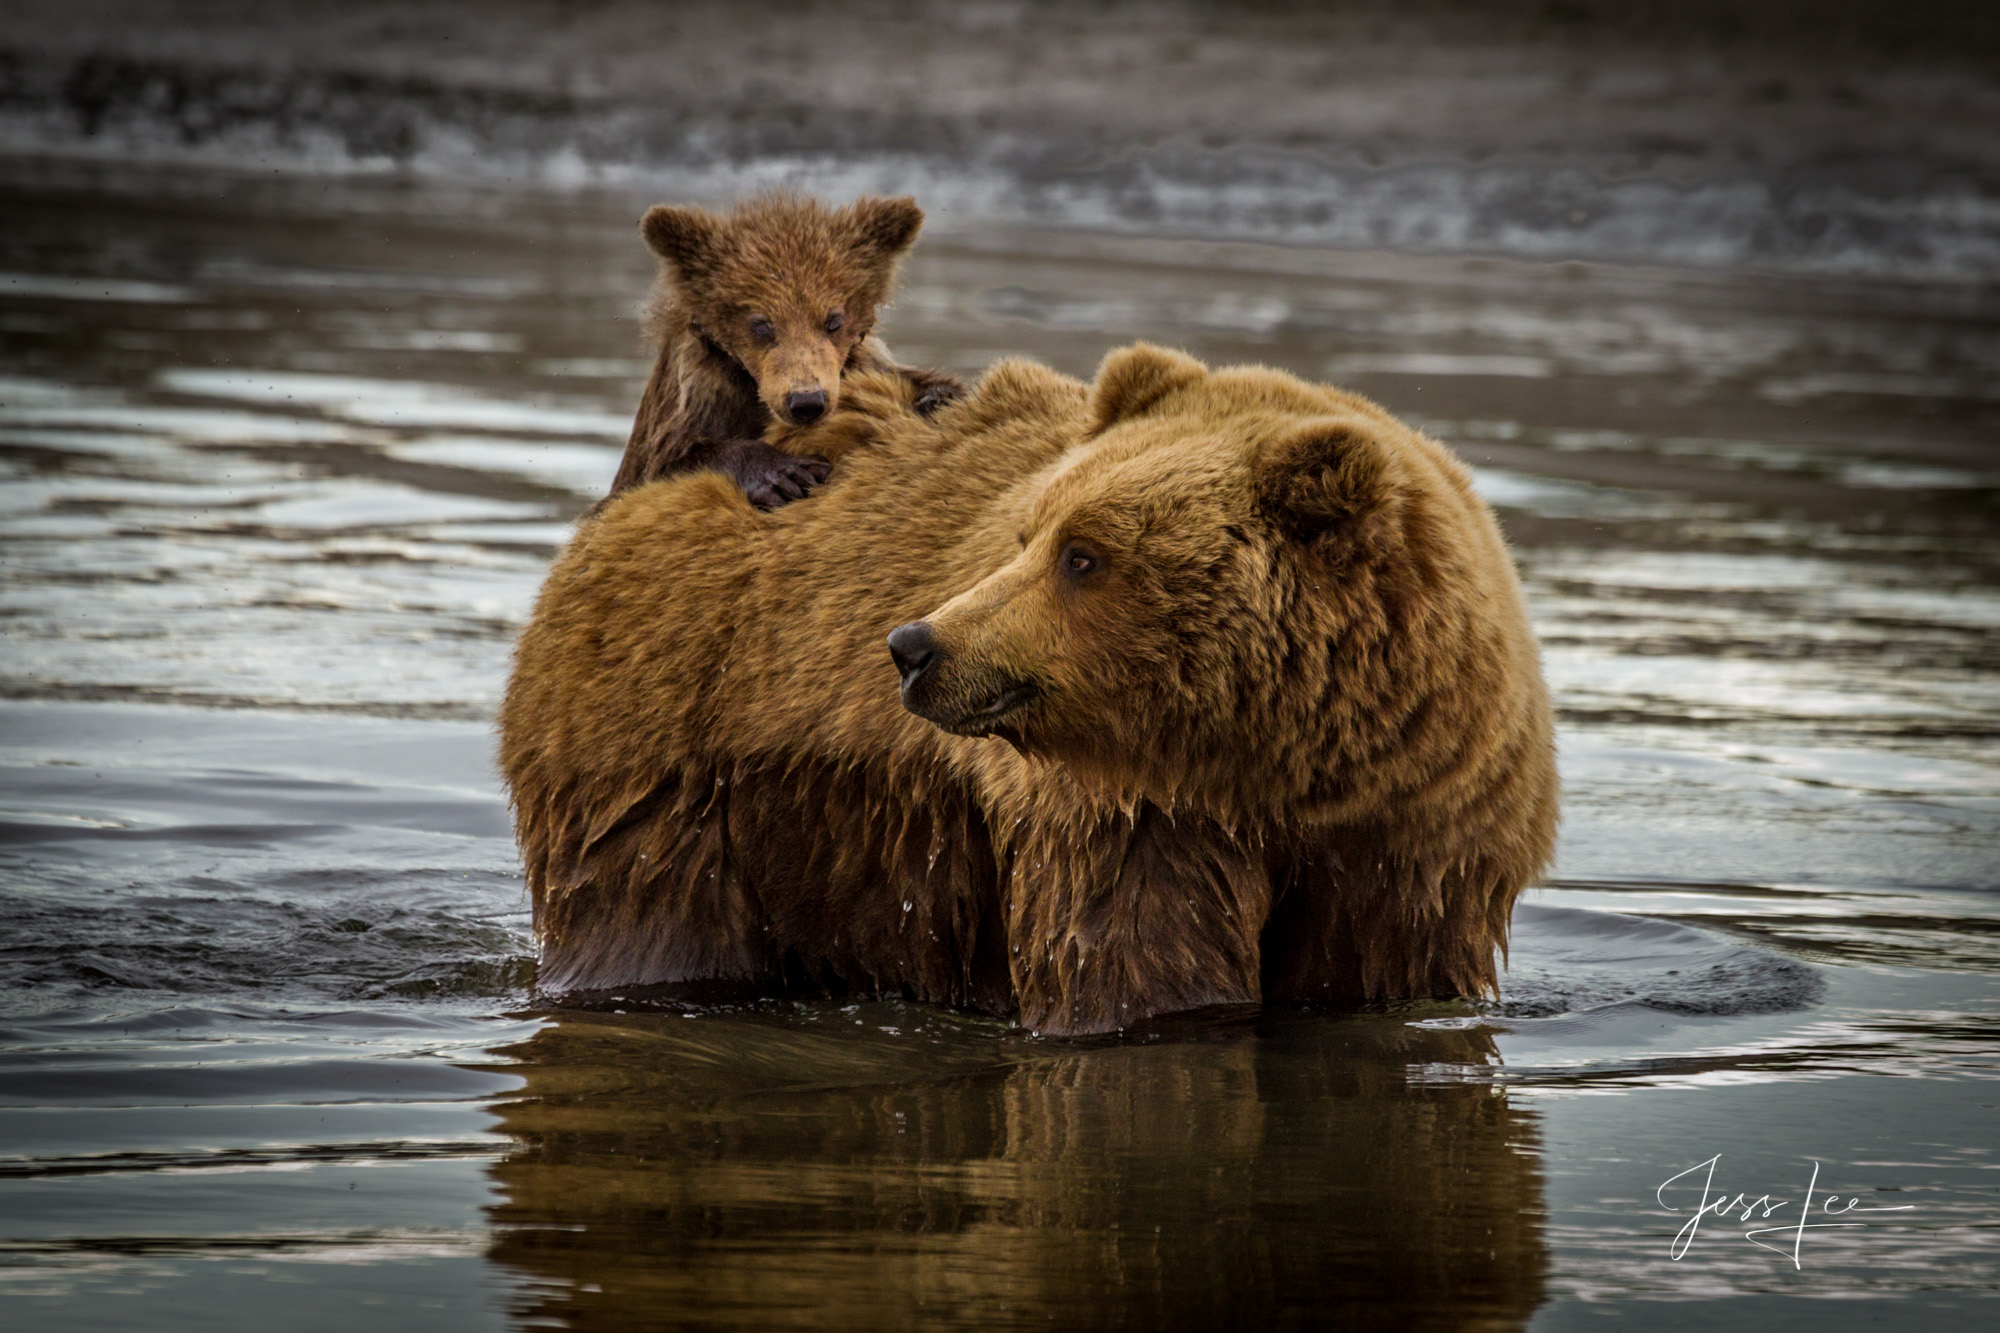 Grizzly cub hitching a ride a Limited edition of 800 prints. These Grizzly bear fine art wildlife photographs are offered as...